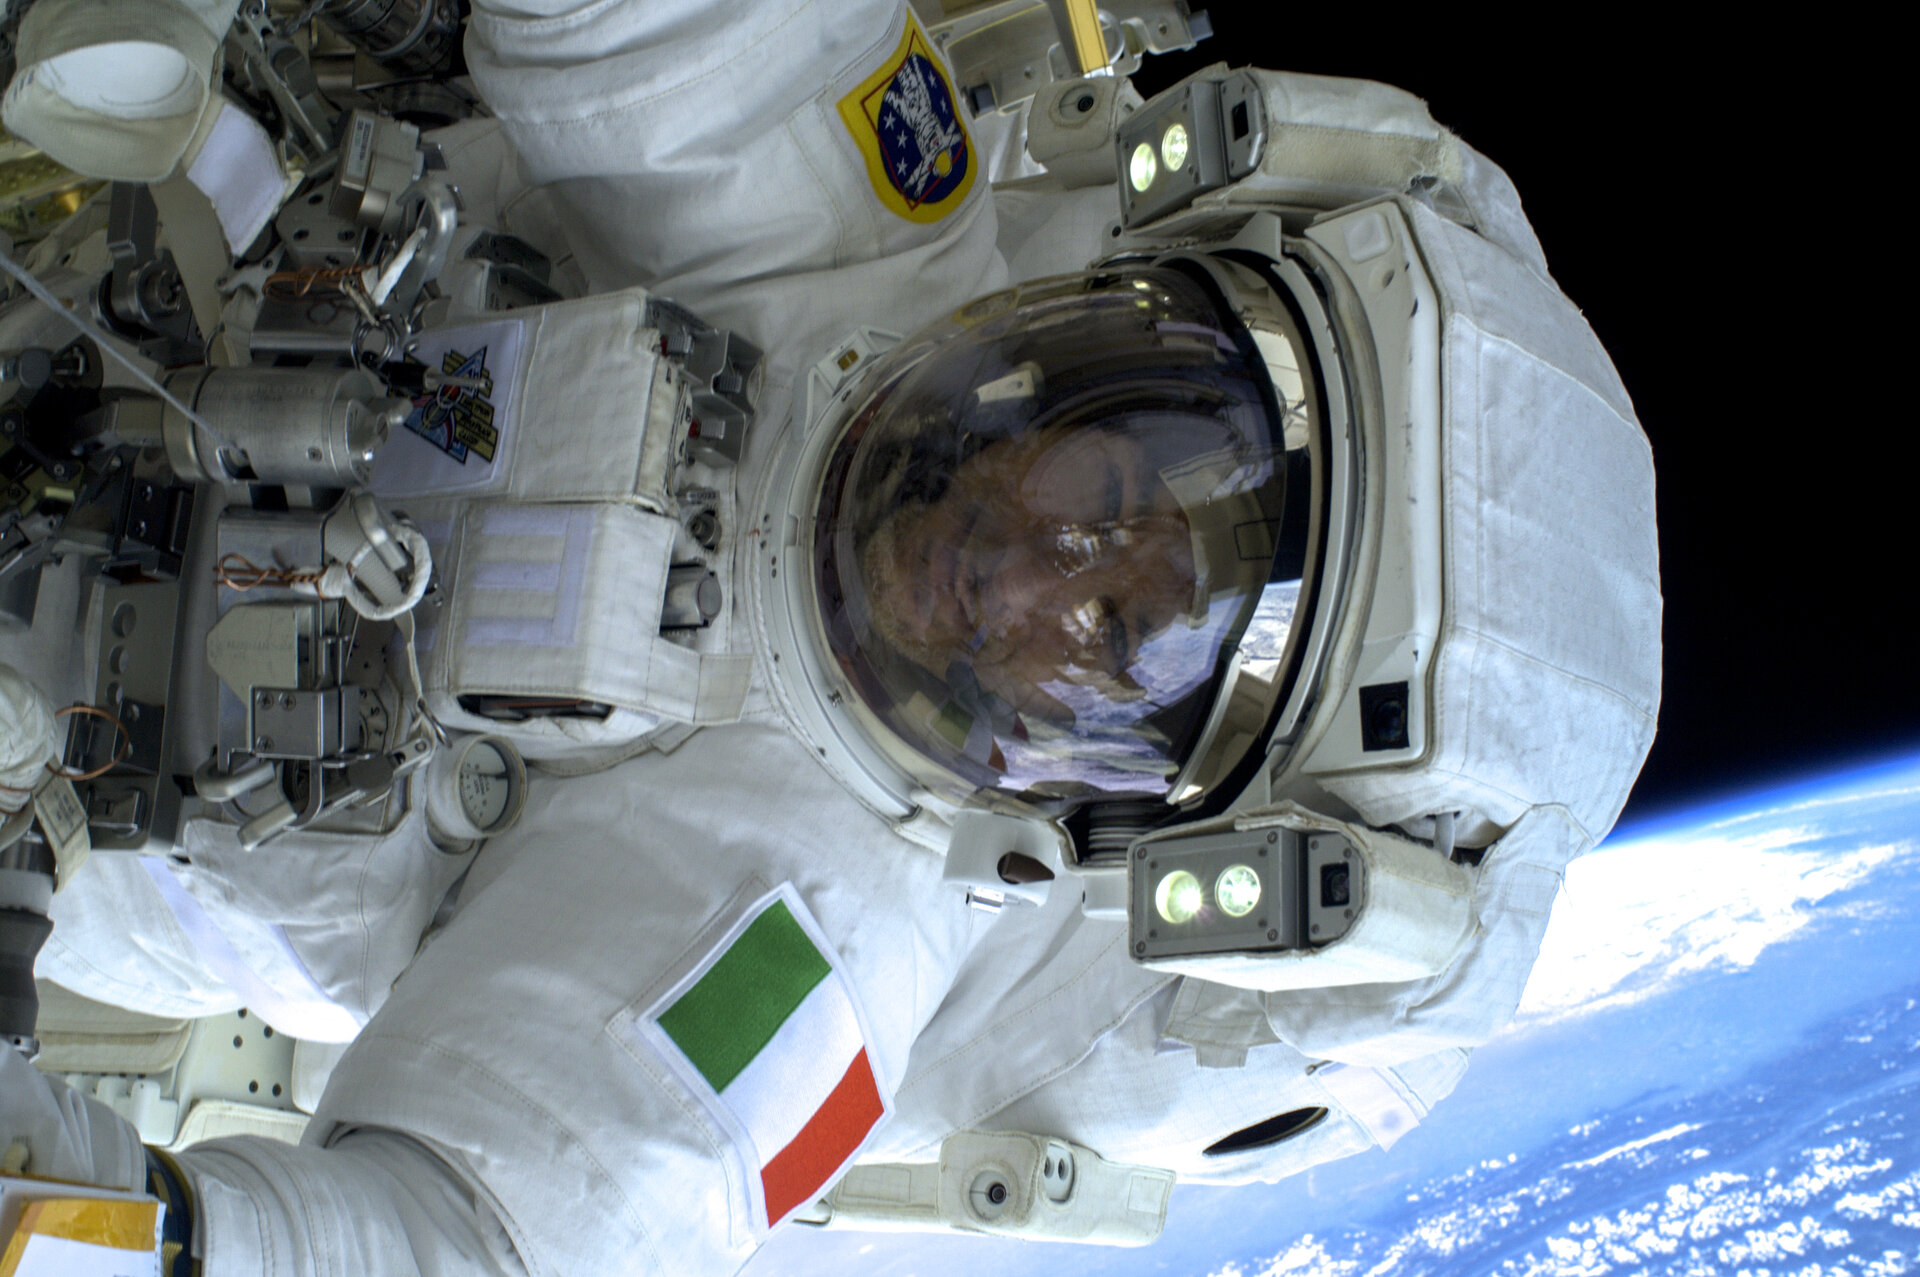 Luca during spacewalk